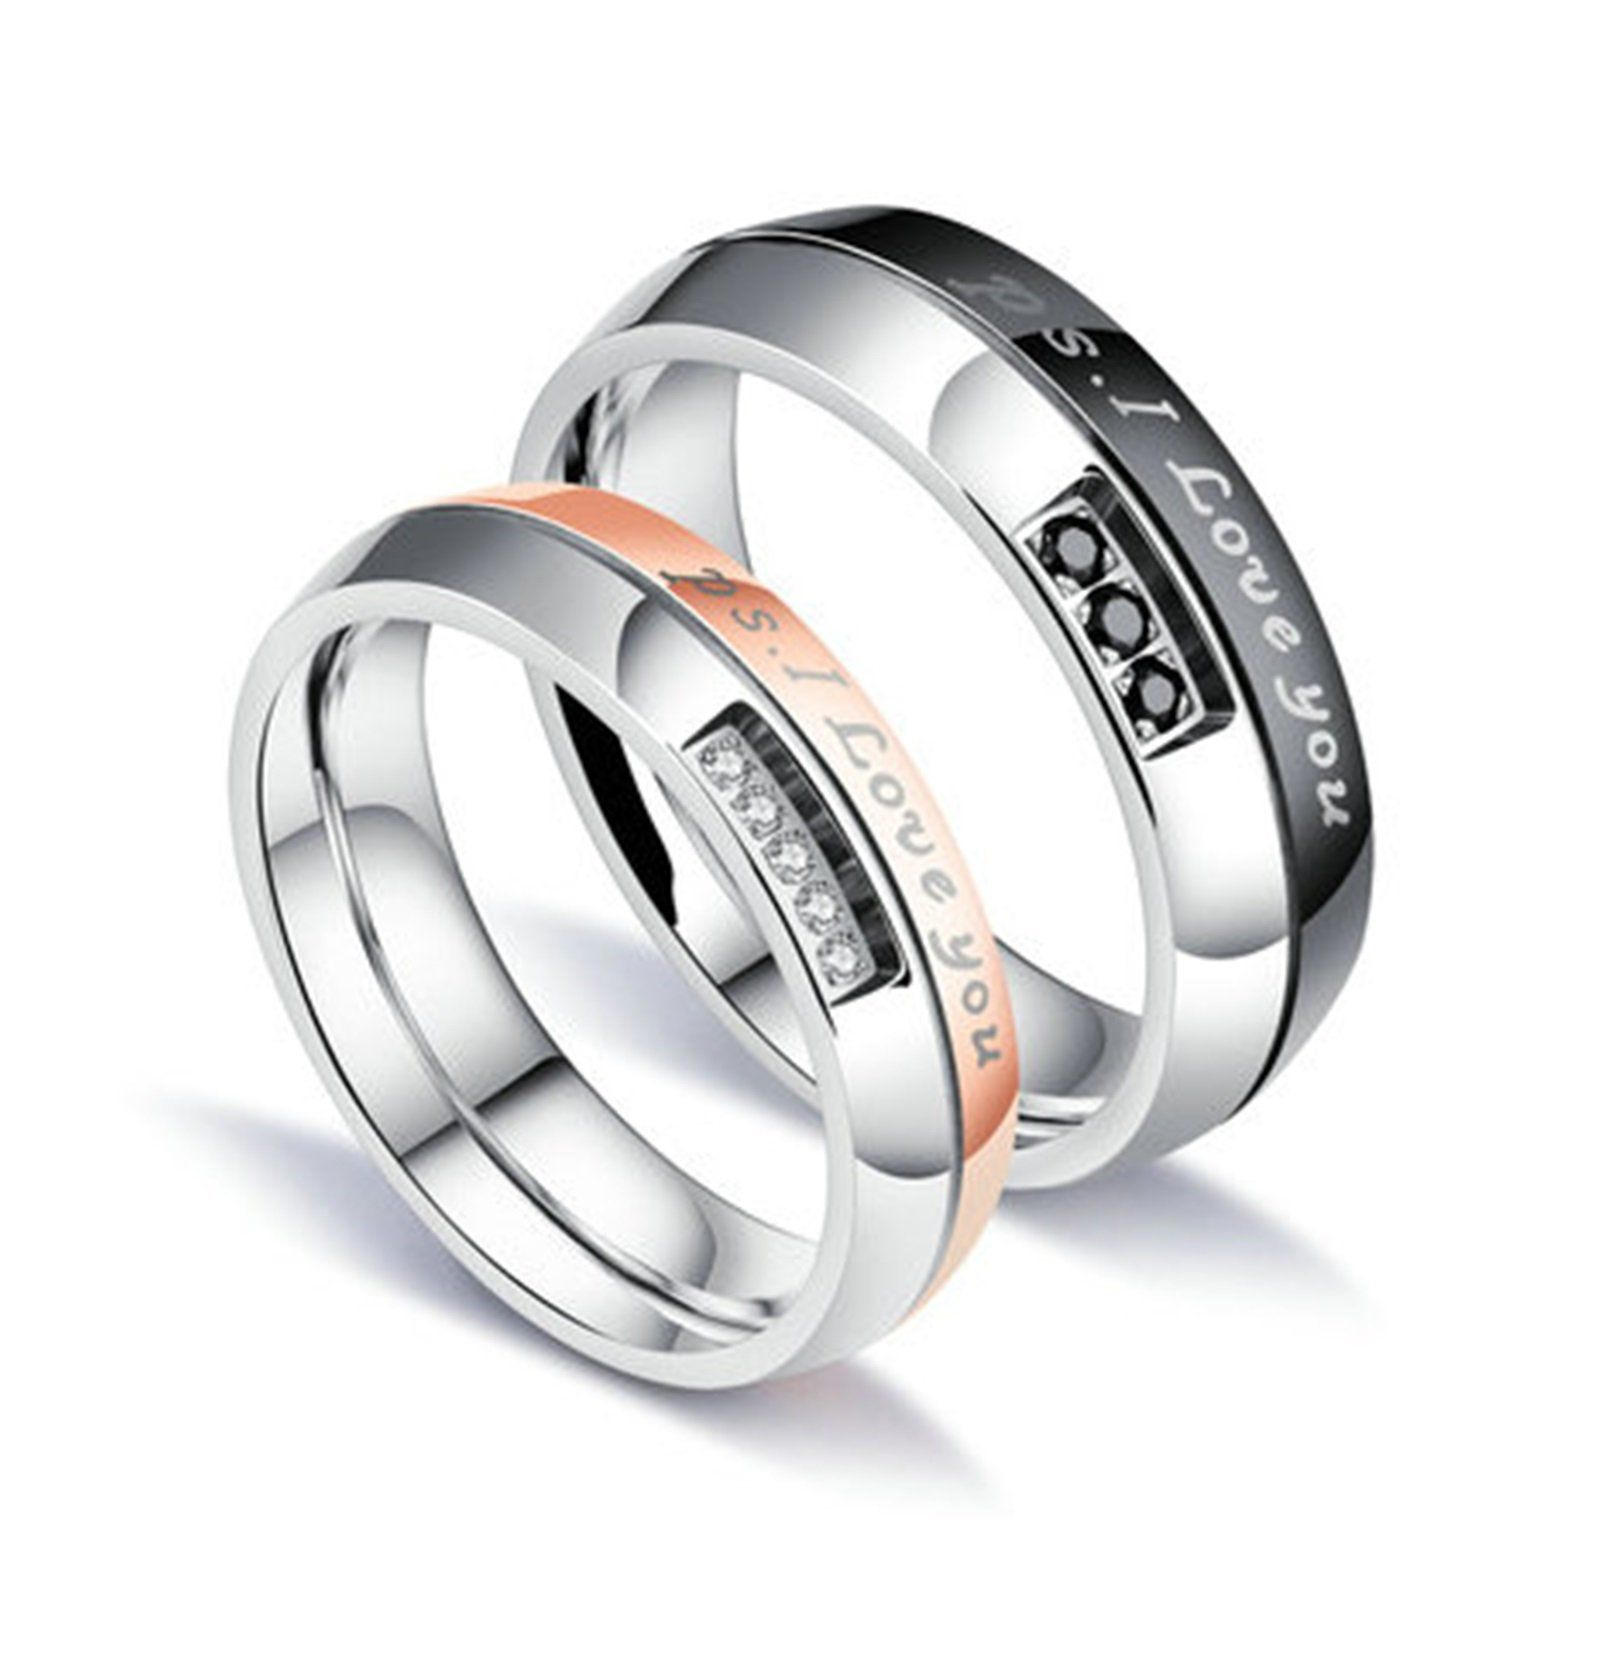 Beydodo 1pcs Stainless Steel Ring 5 Cubic Zirconia Engraving Ps I Love You Width Wedd Engagement Rings Couple Beautiful Jewelry Ring Promise Jewelry